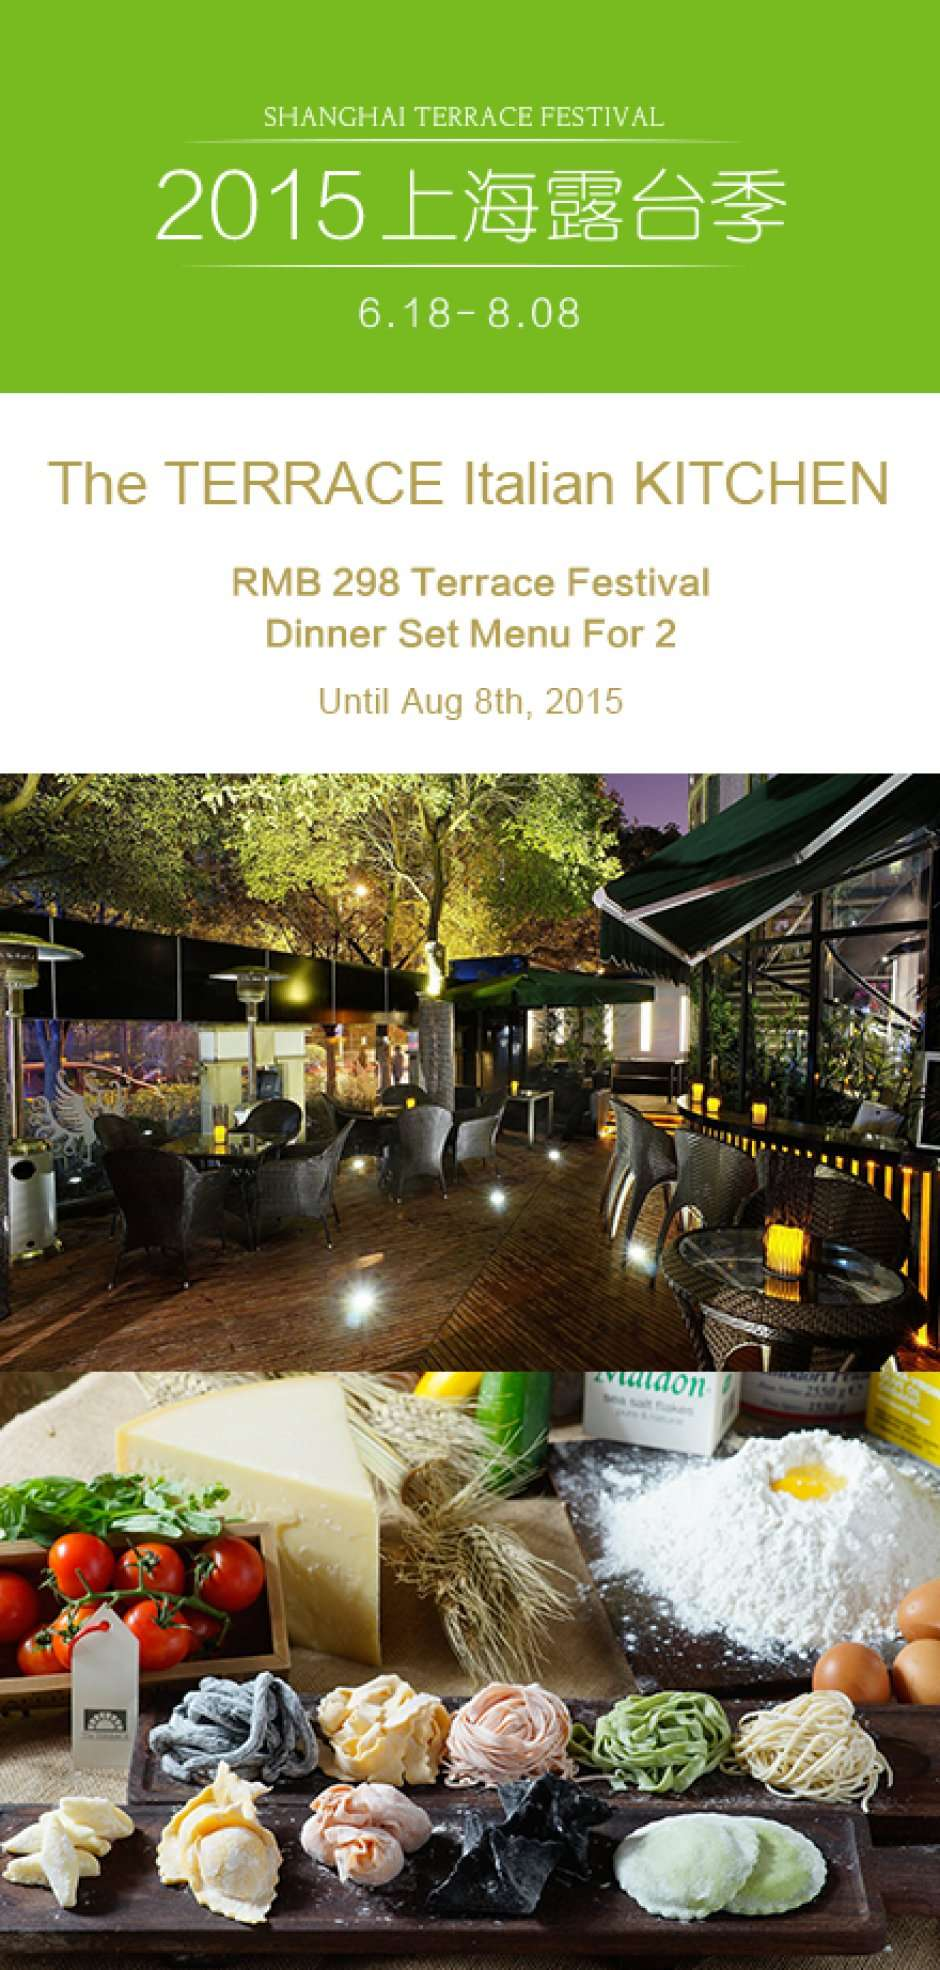 The terrace italian kitchen 2015 shanghai terrace festival for The terrace menu